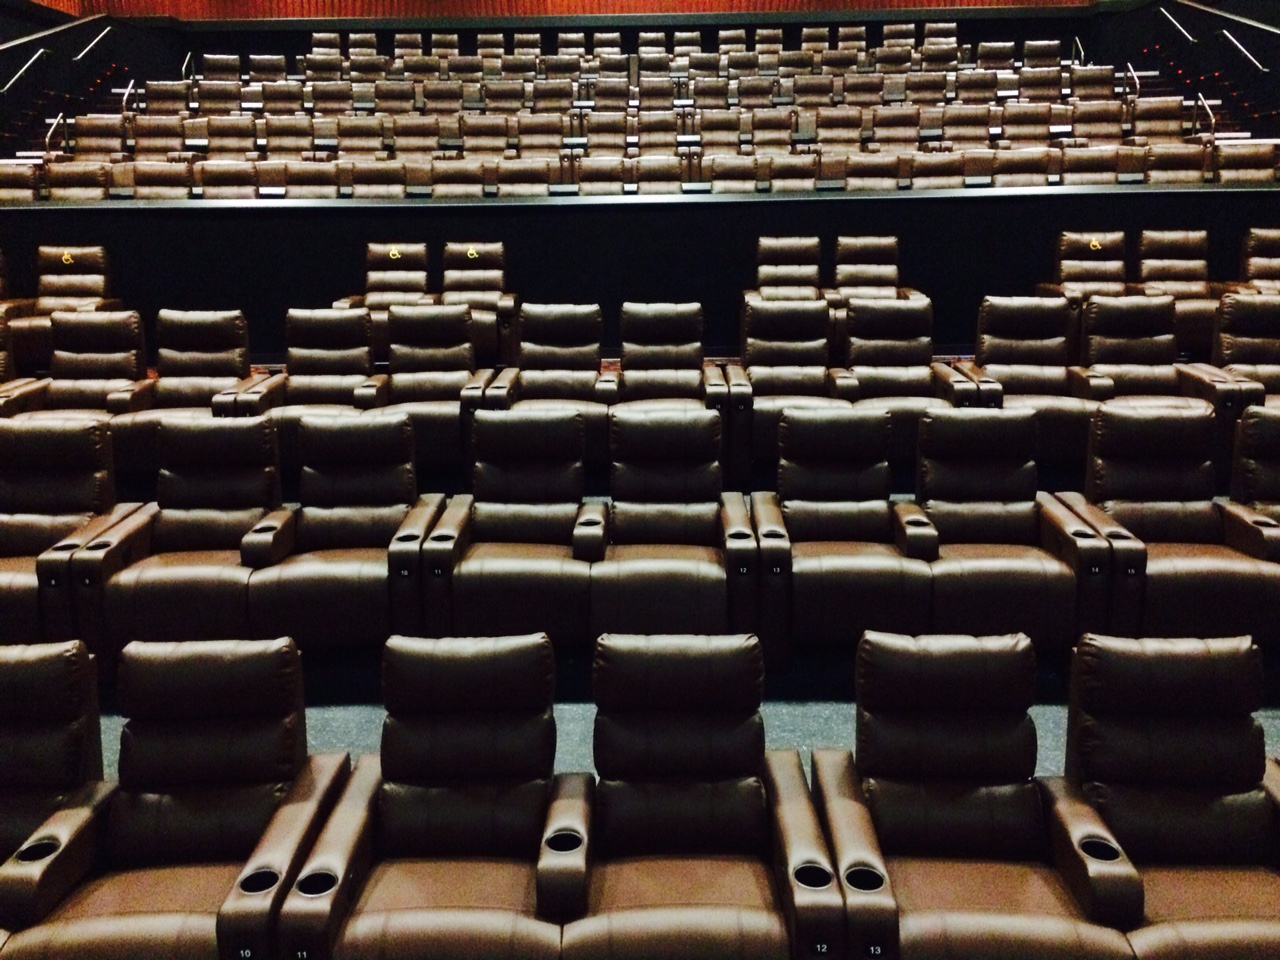 D-FWu0027s first new all-recliner Cinemark movie theater opens Thursday in Roanoke | GuideLive & D-FWu0027s first new all-recliner Cinemark movie theater opens ... islam-shia.org